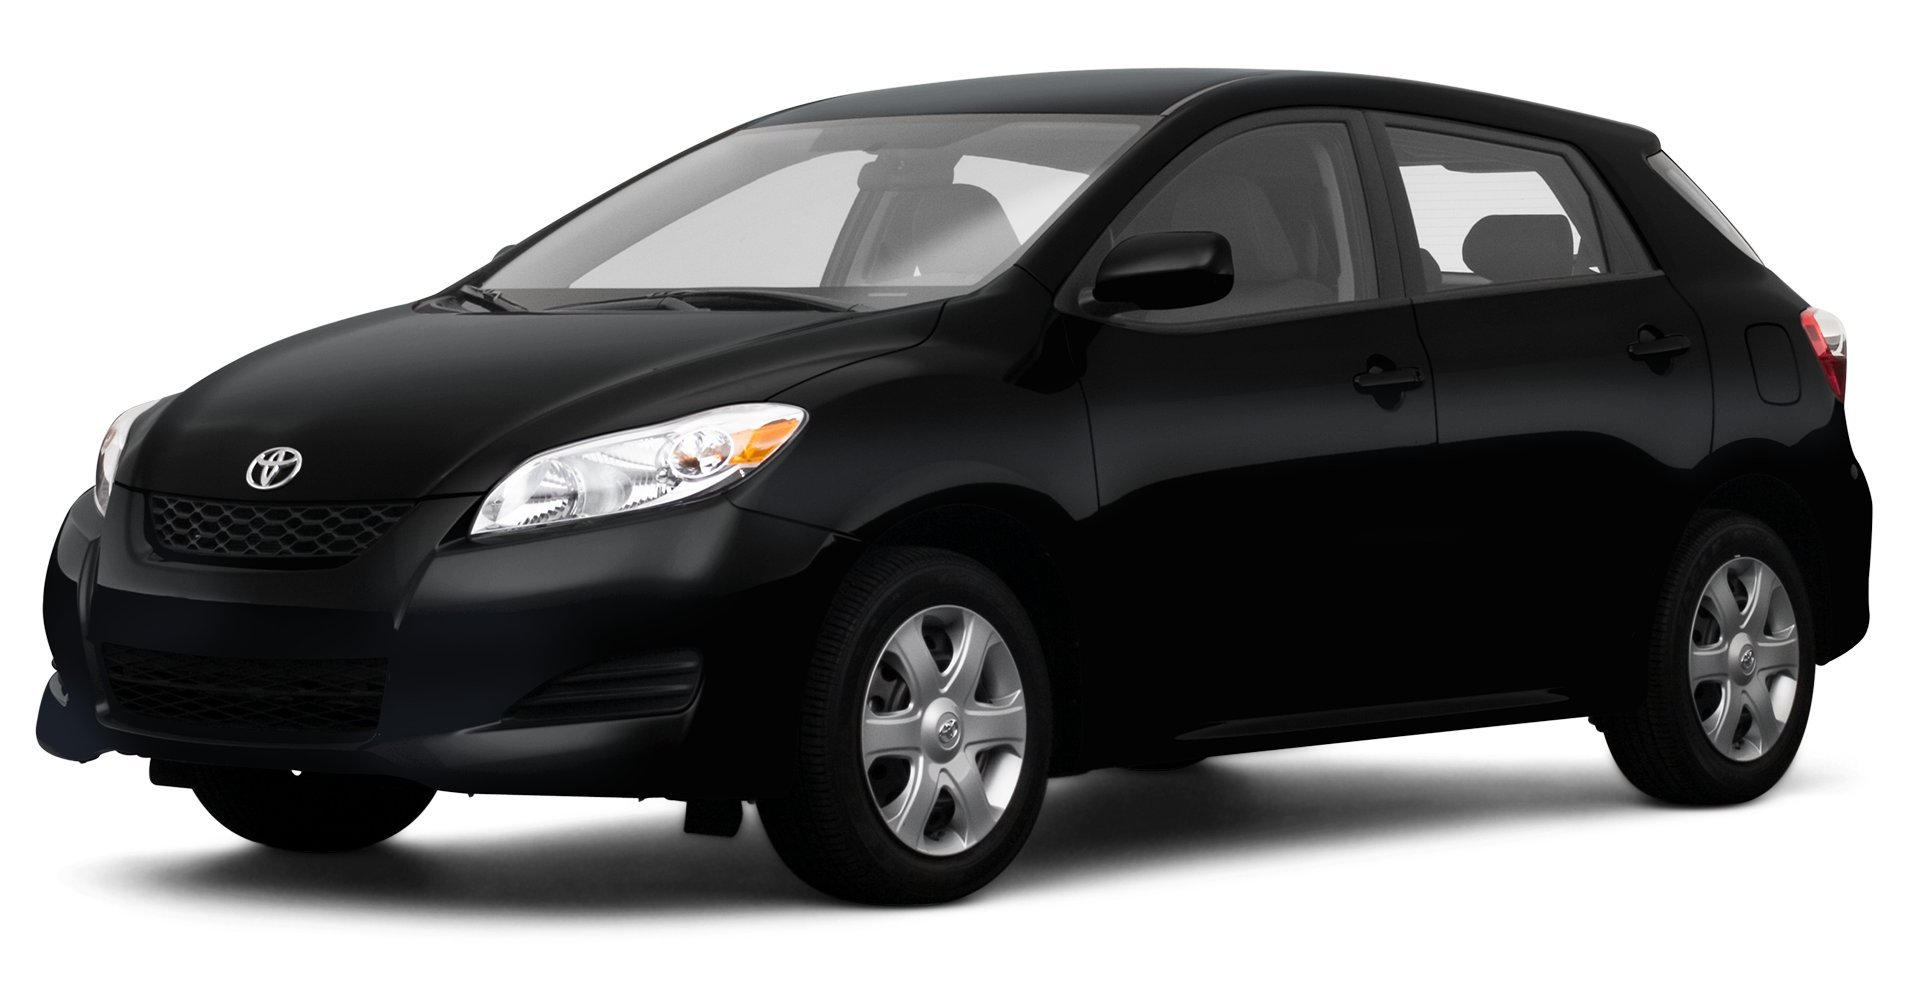 2009 toyota matrix reviews images and specs. Black Bedroom Furniture Sets. Home Design Ideas